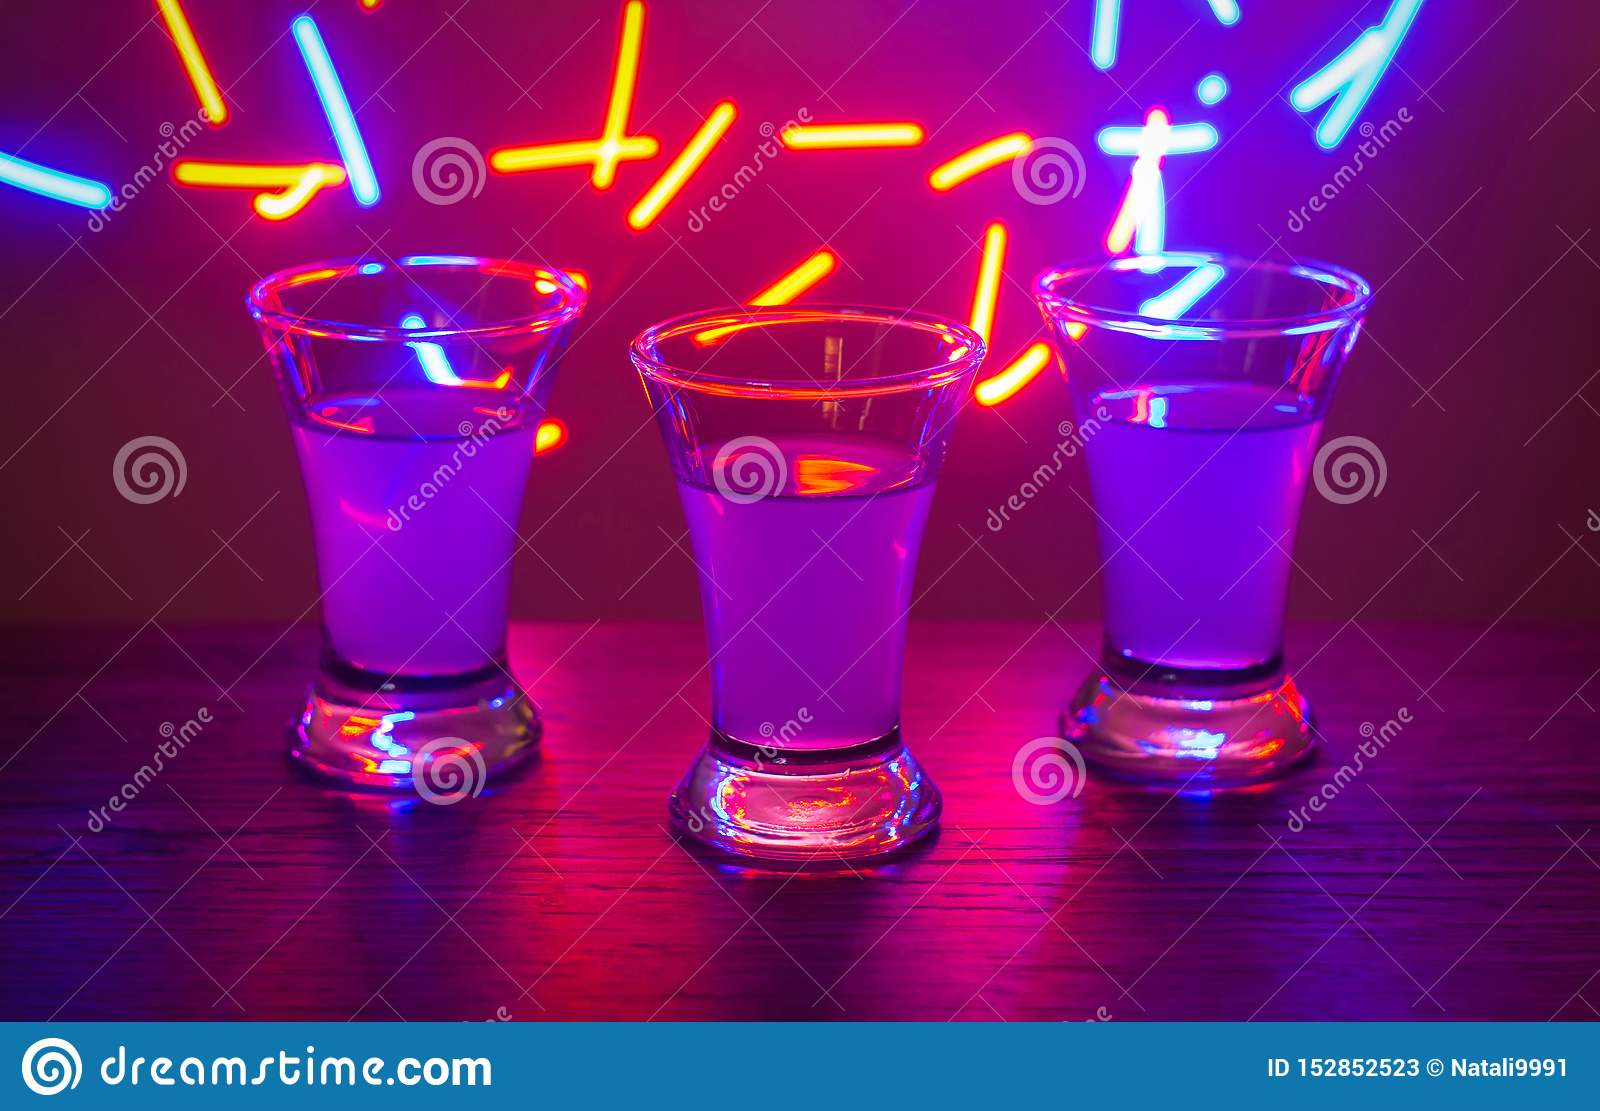 Three drinks at the party. Three shots with cocktails at the bar. Liquor, vodka, fresh. Shining on a colored background. Night clu